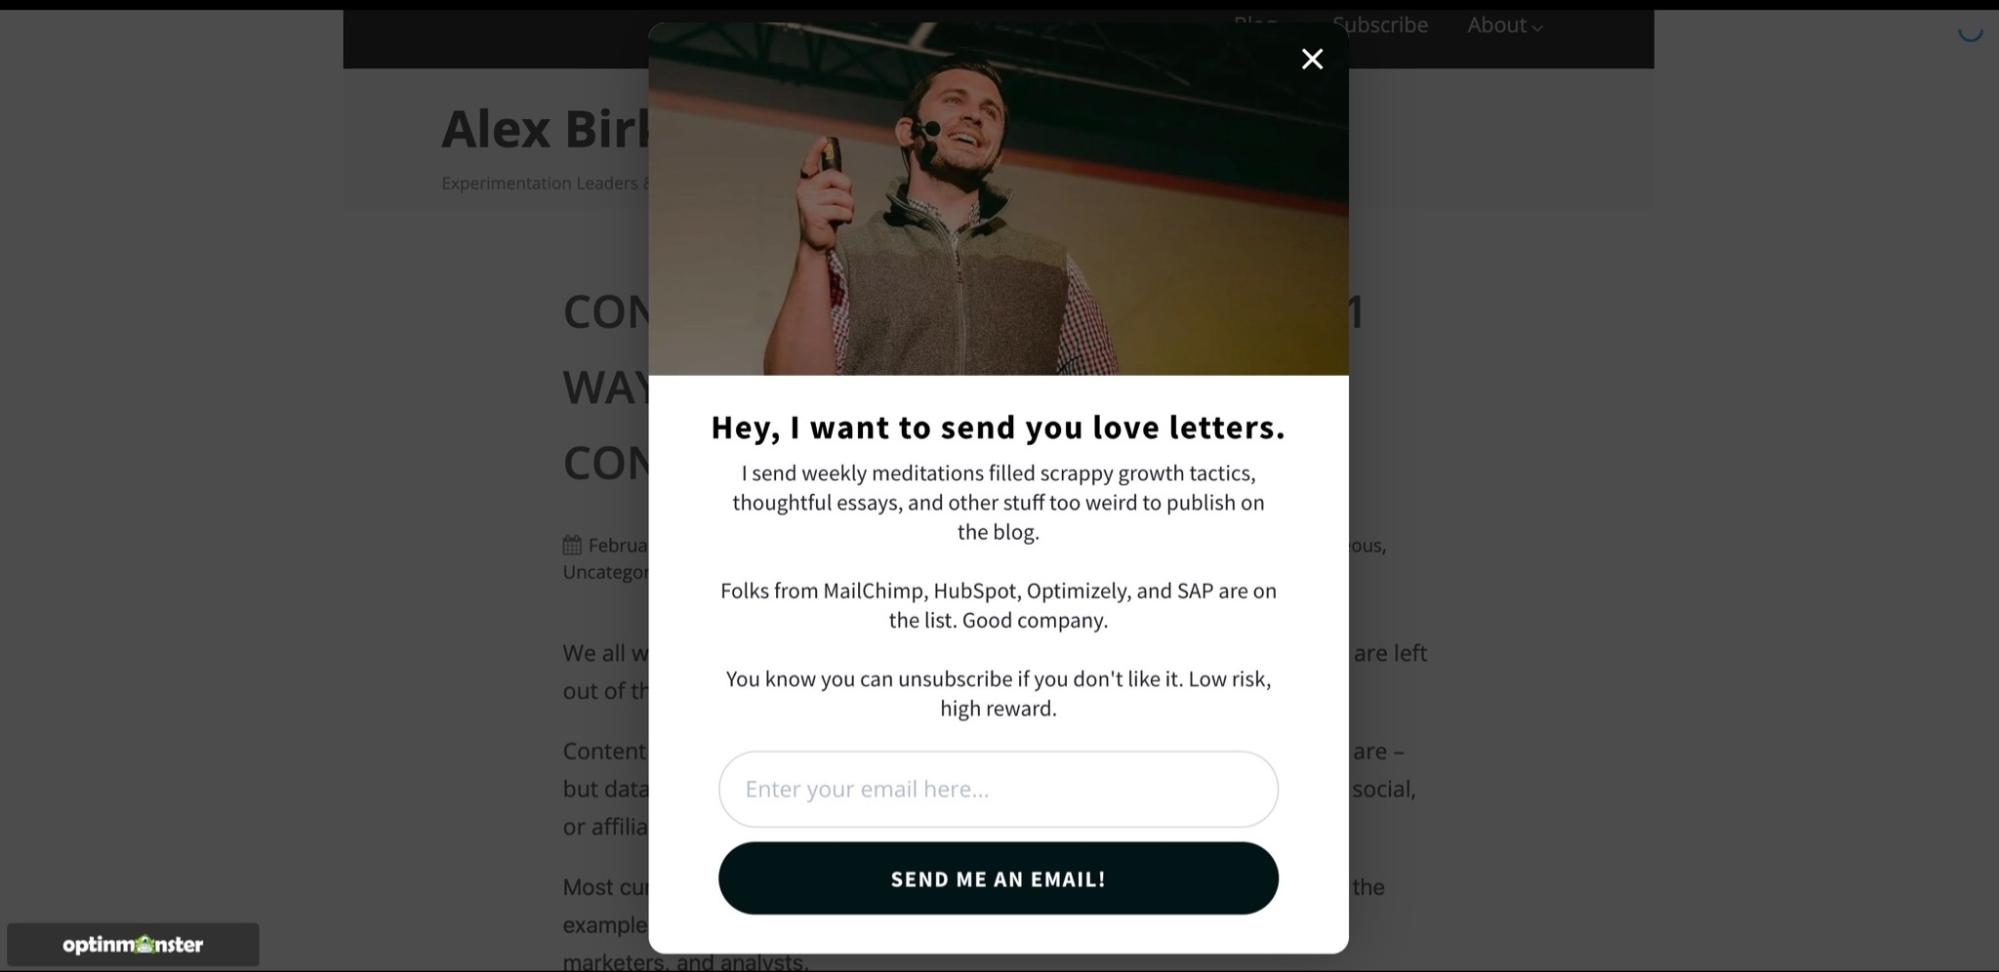 Example of a pop-up form used on Alex Birkett's website as part of his lead capture strategy